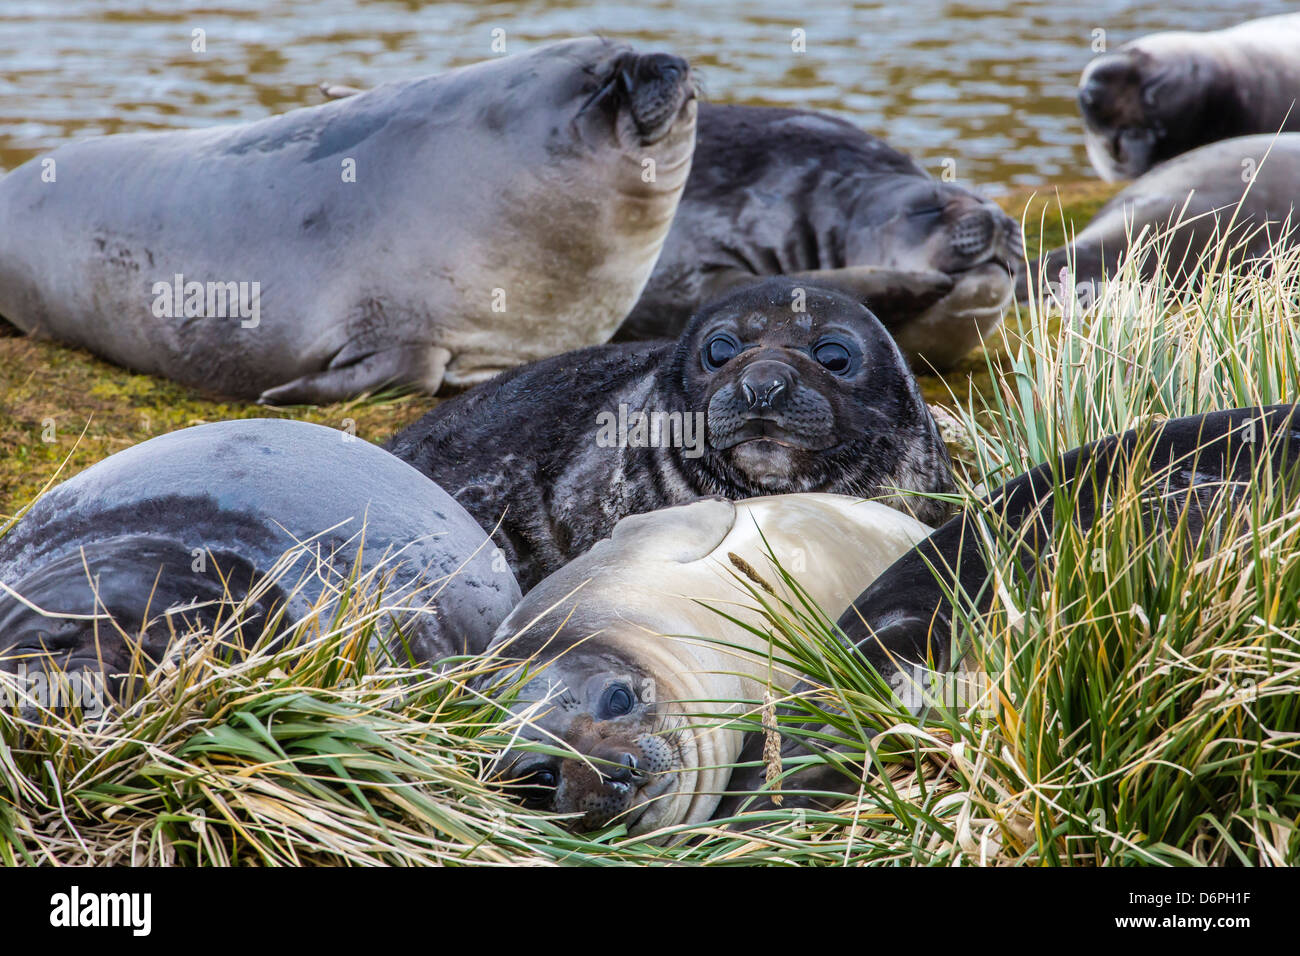 Southern elephant seal (Mirounga leonina) pups, Peggotty Bluff, South Georgia, South Atlantic Ocean, Polar Regions - Stock Image